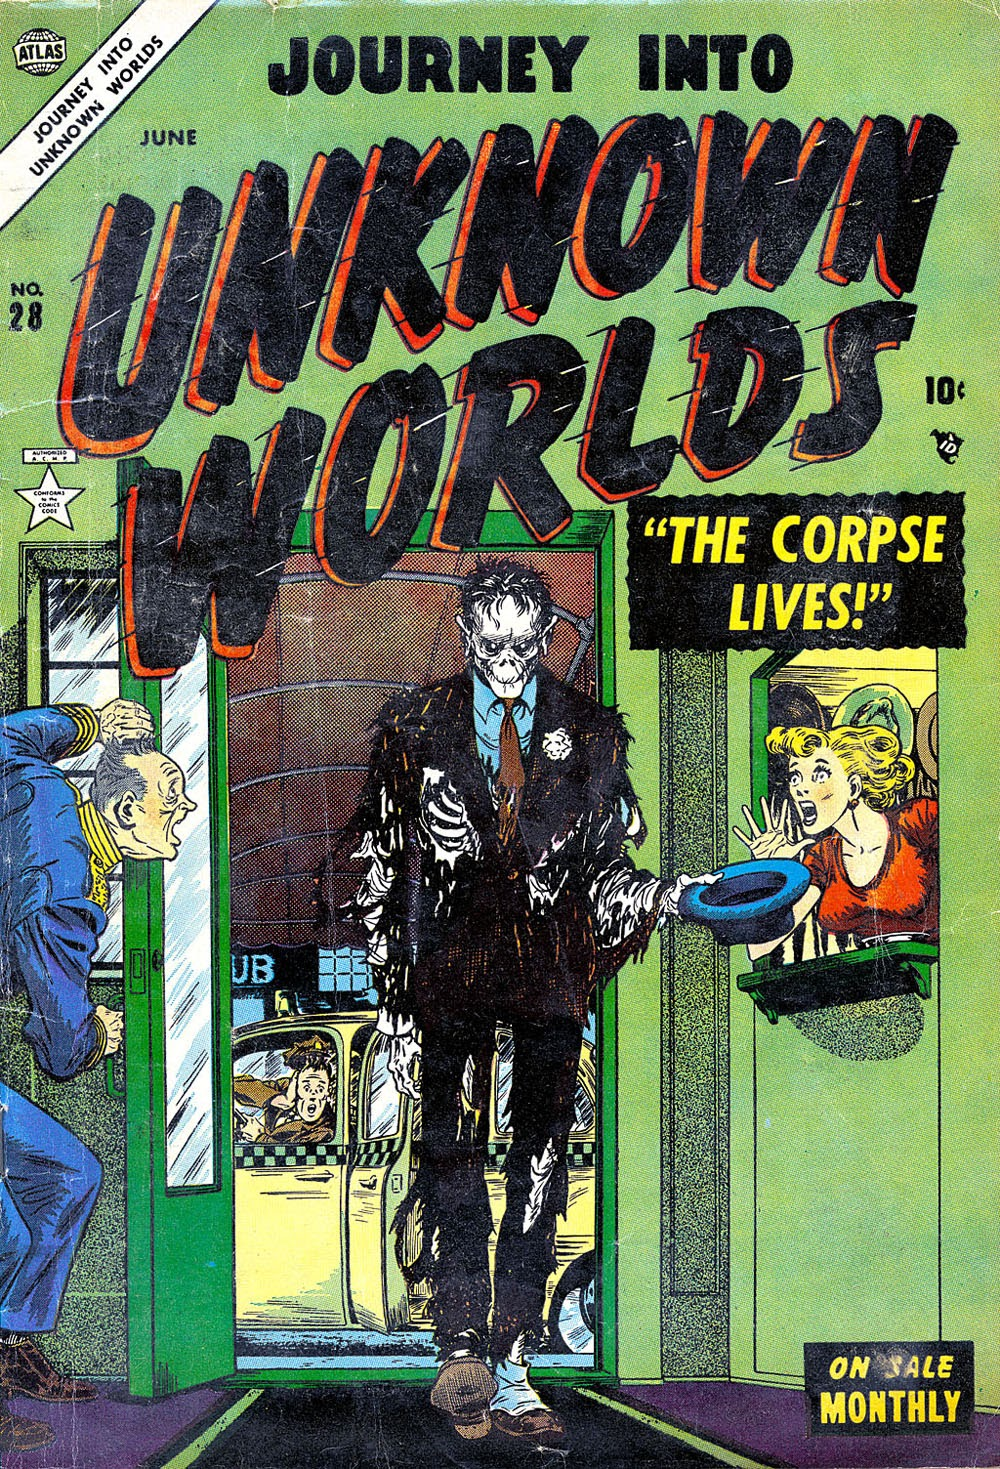 Journey Into Unknown Worlds (1950) issue 28 - Page 1